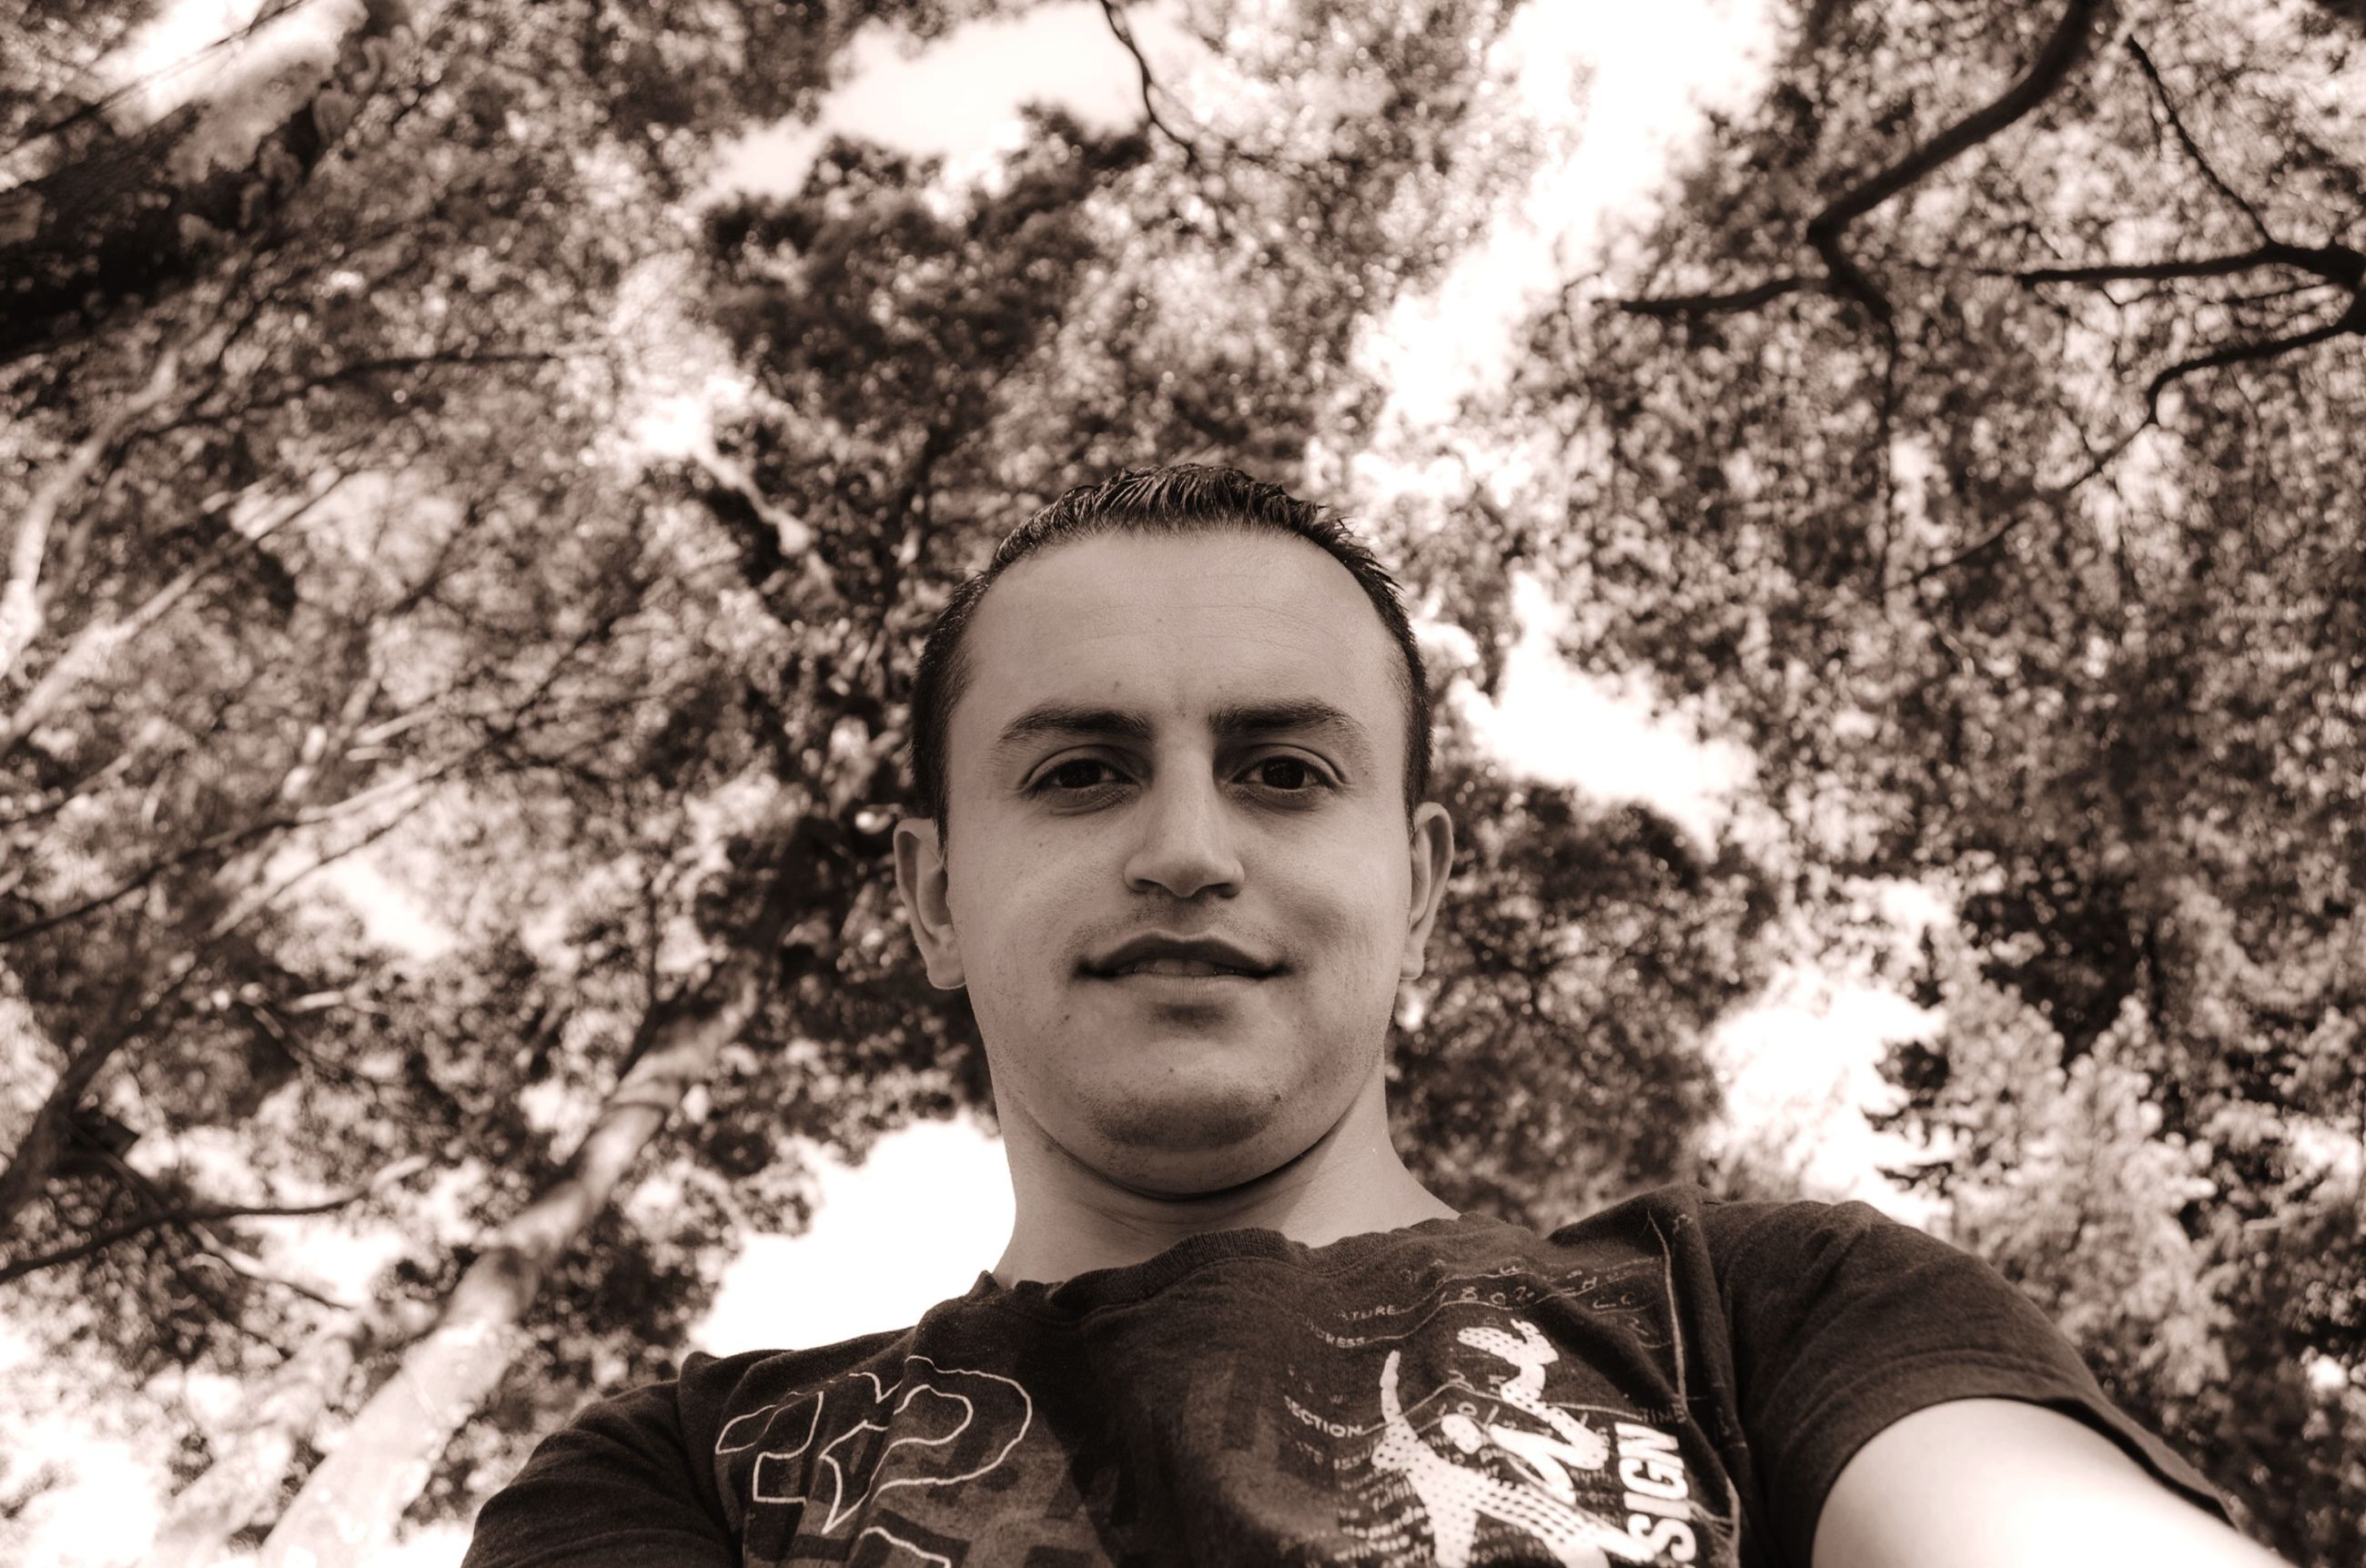 tree, headshot, portrait, looking at camera, lifestyles, young adult, person, leisure activity, front view, forest, young men, head and shoulders, casual clothing, close-up, day, low angle view, outdoors, human face